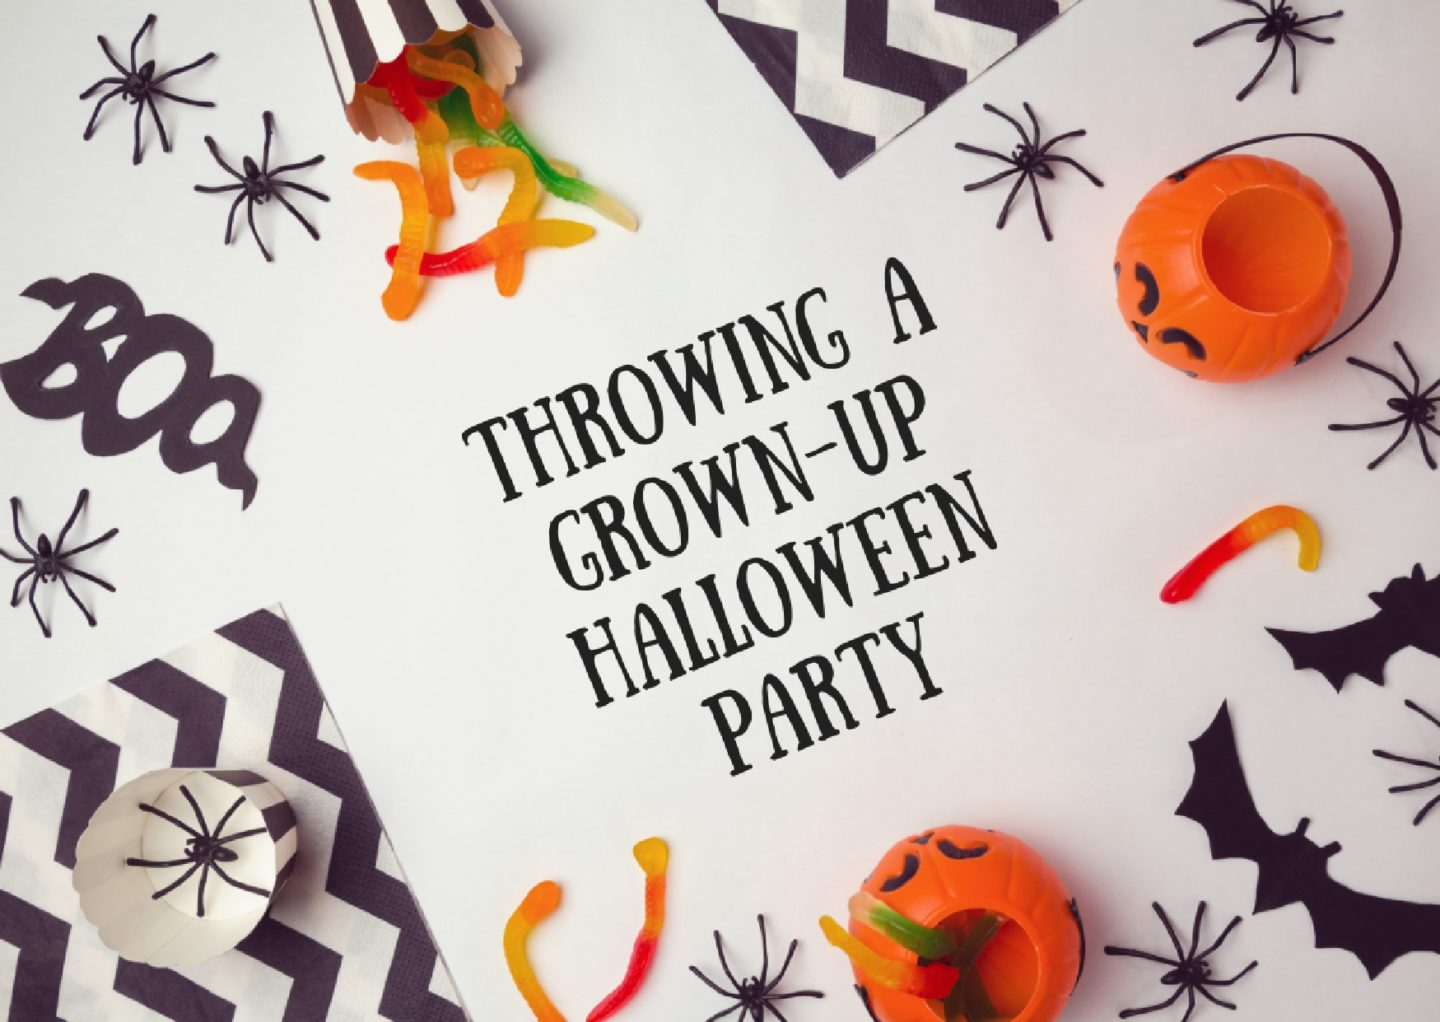 Throwing a Grown-up Halloween Party